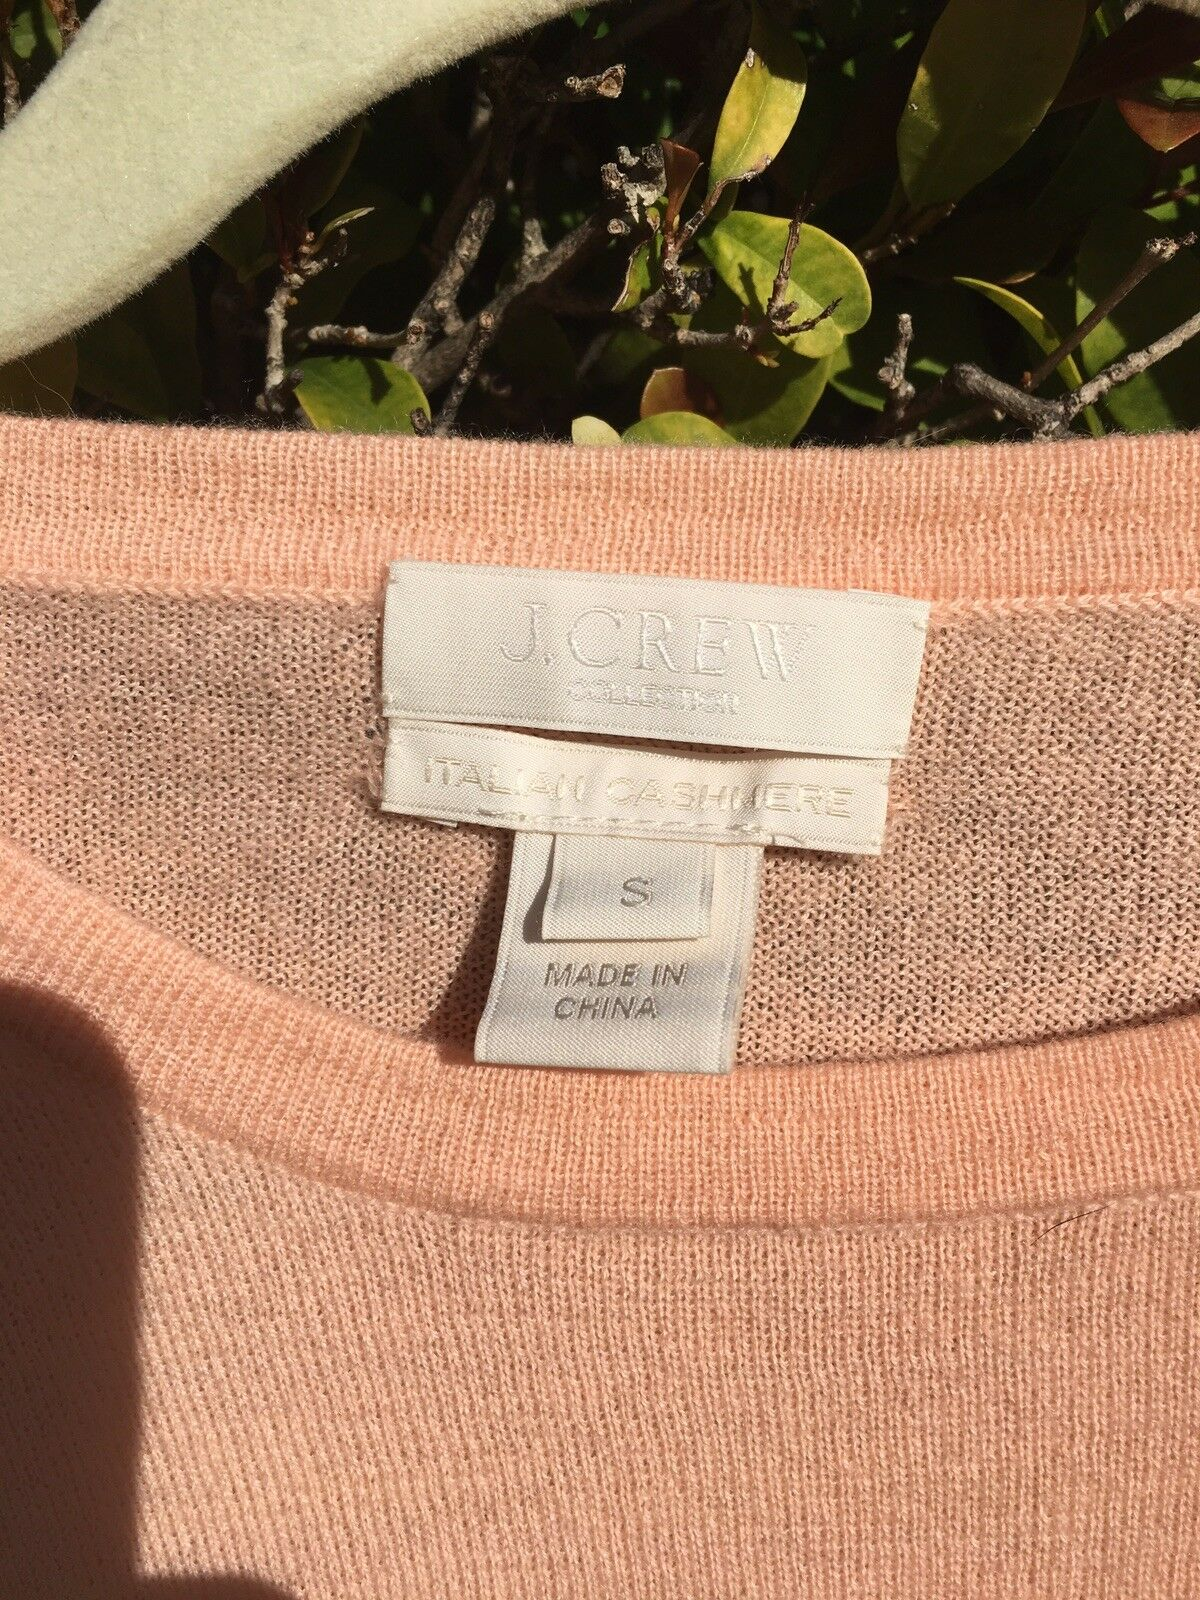 J. CREW COLLECTION Italian Featherweight Cashmere Long Long Long Sleeve T-Shirt Sweater S 9f0407